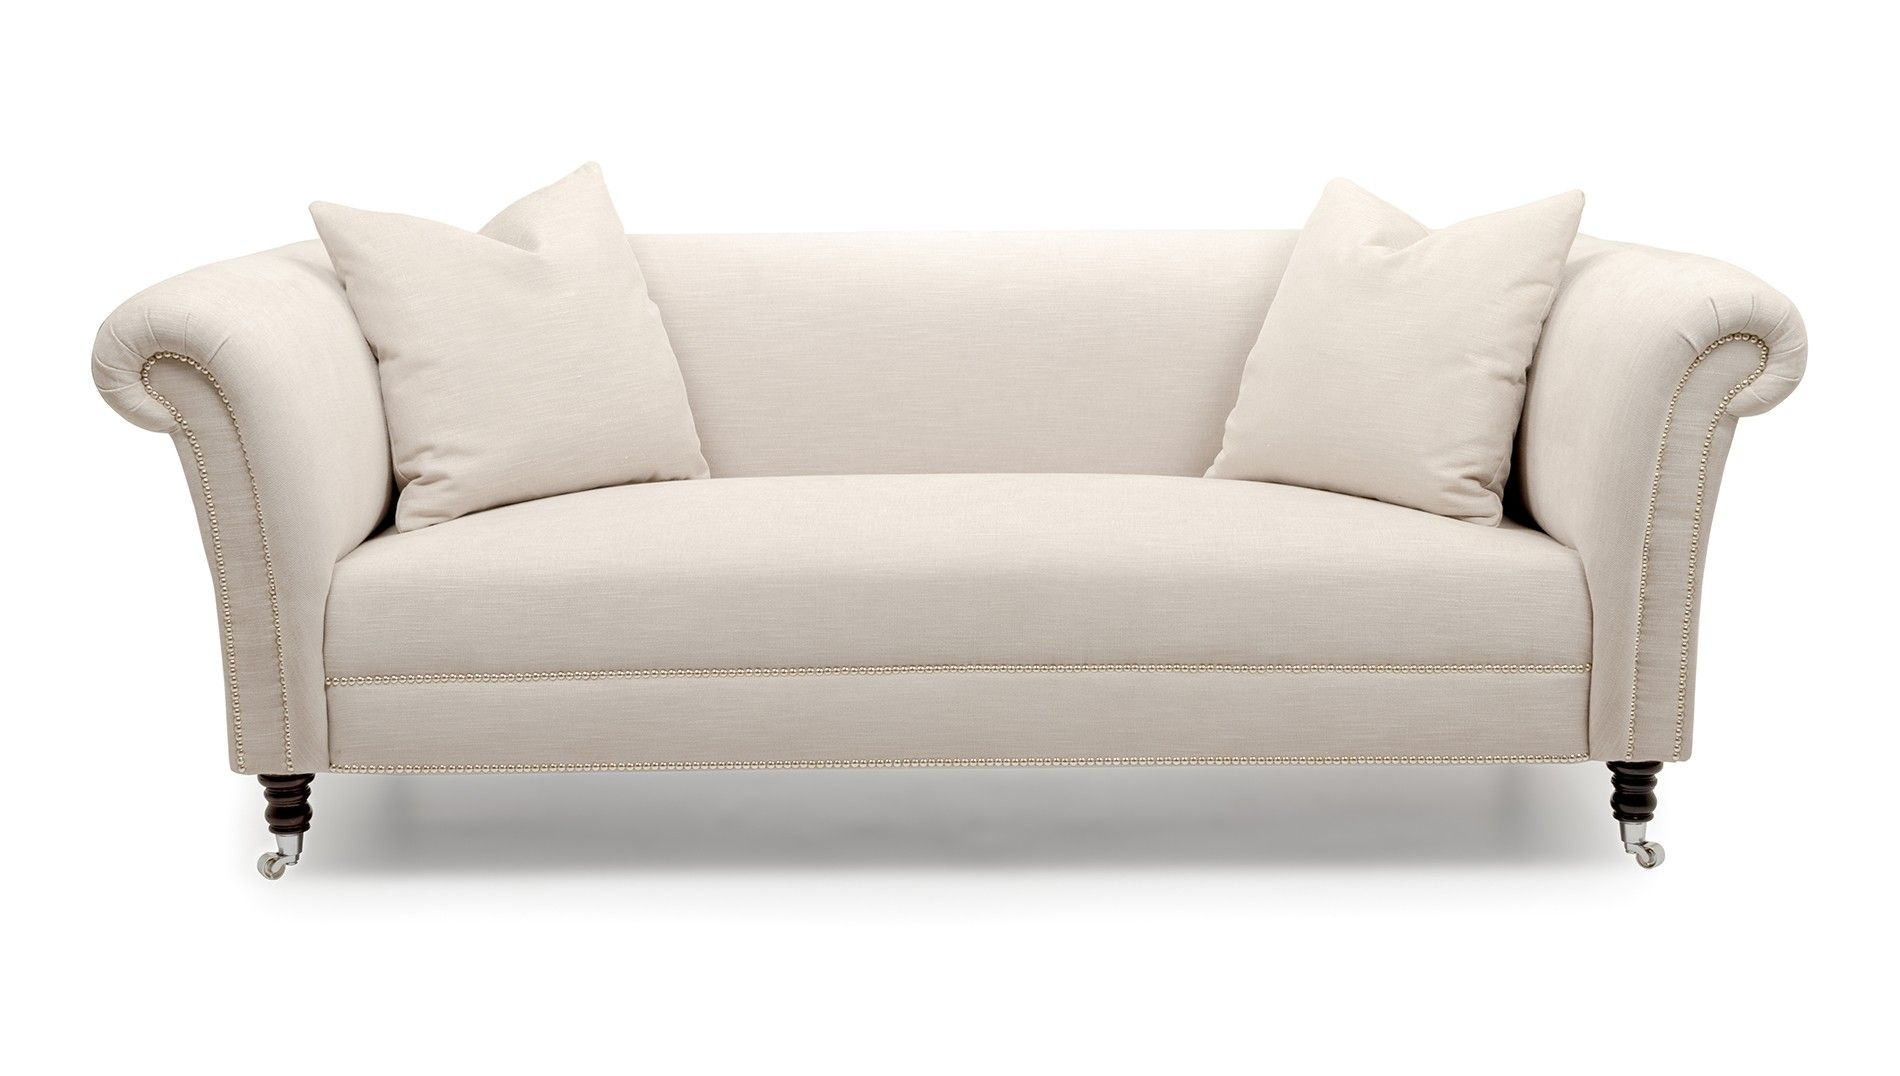 The Blair is a version of the traditional Chesterfield sofa